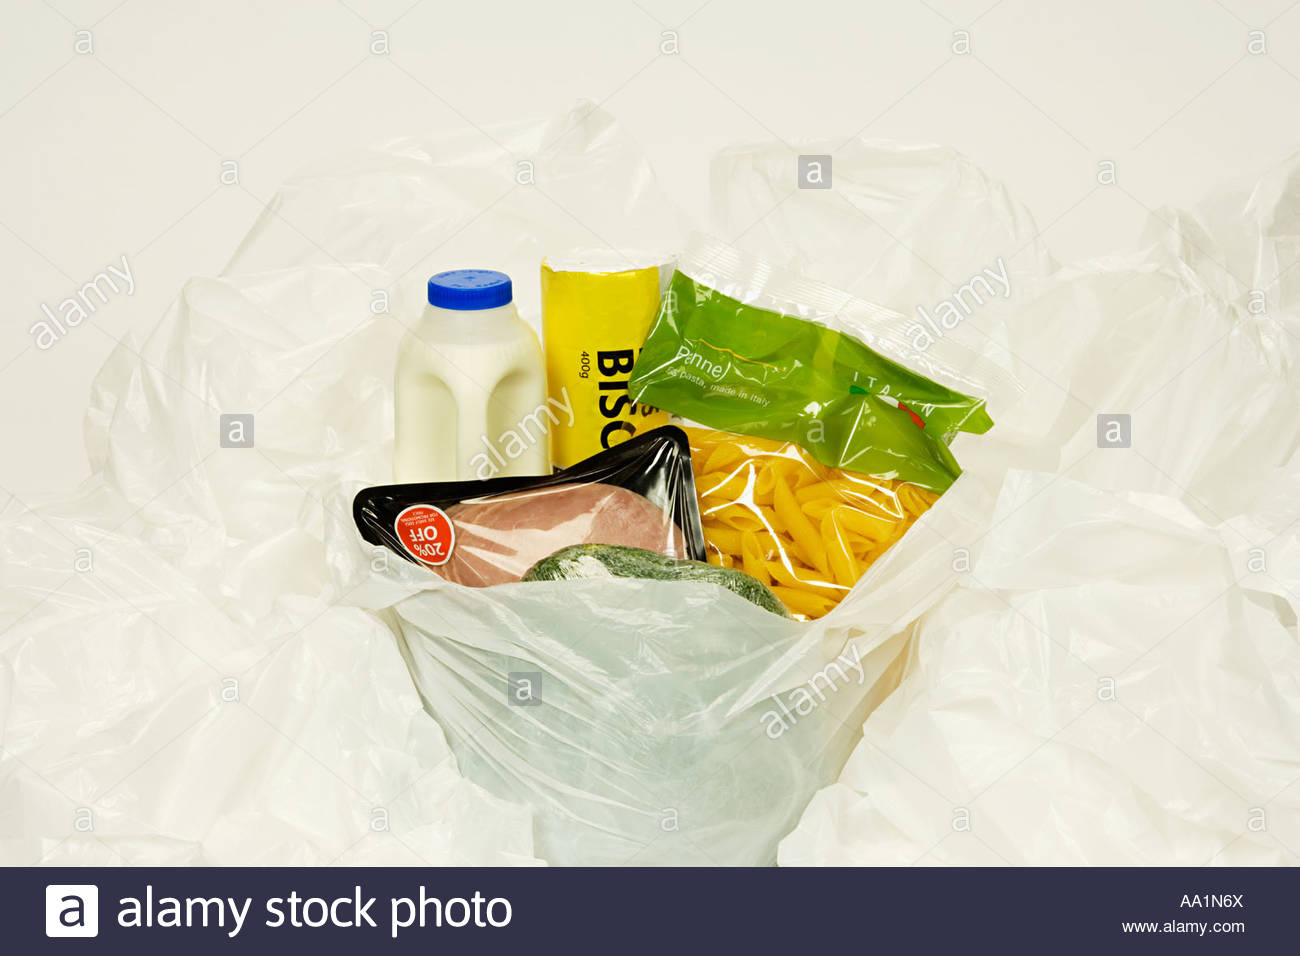 Food in a shopping bag - Stock Image